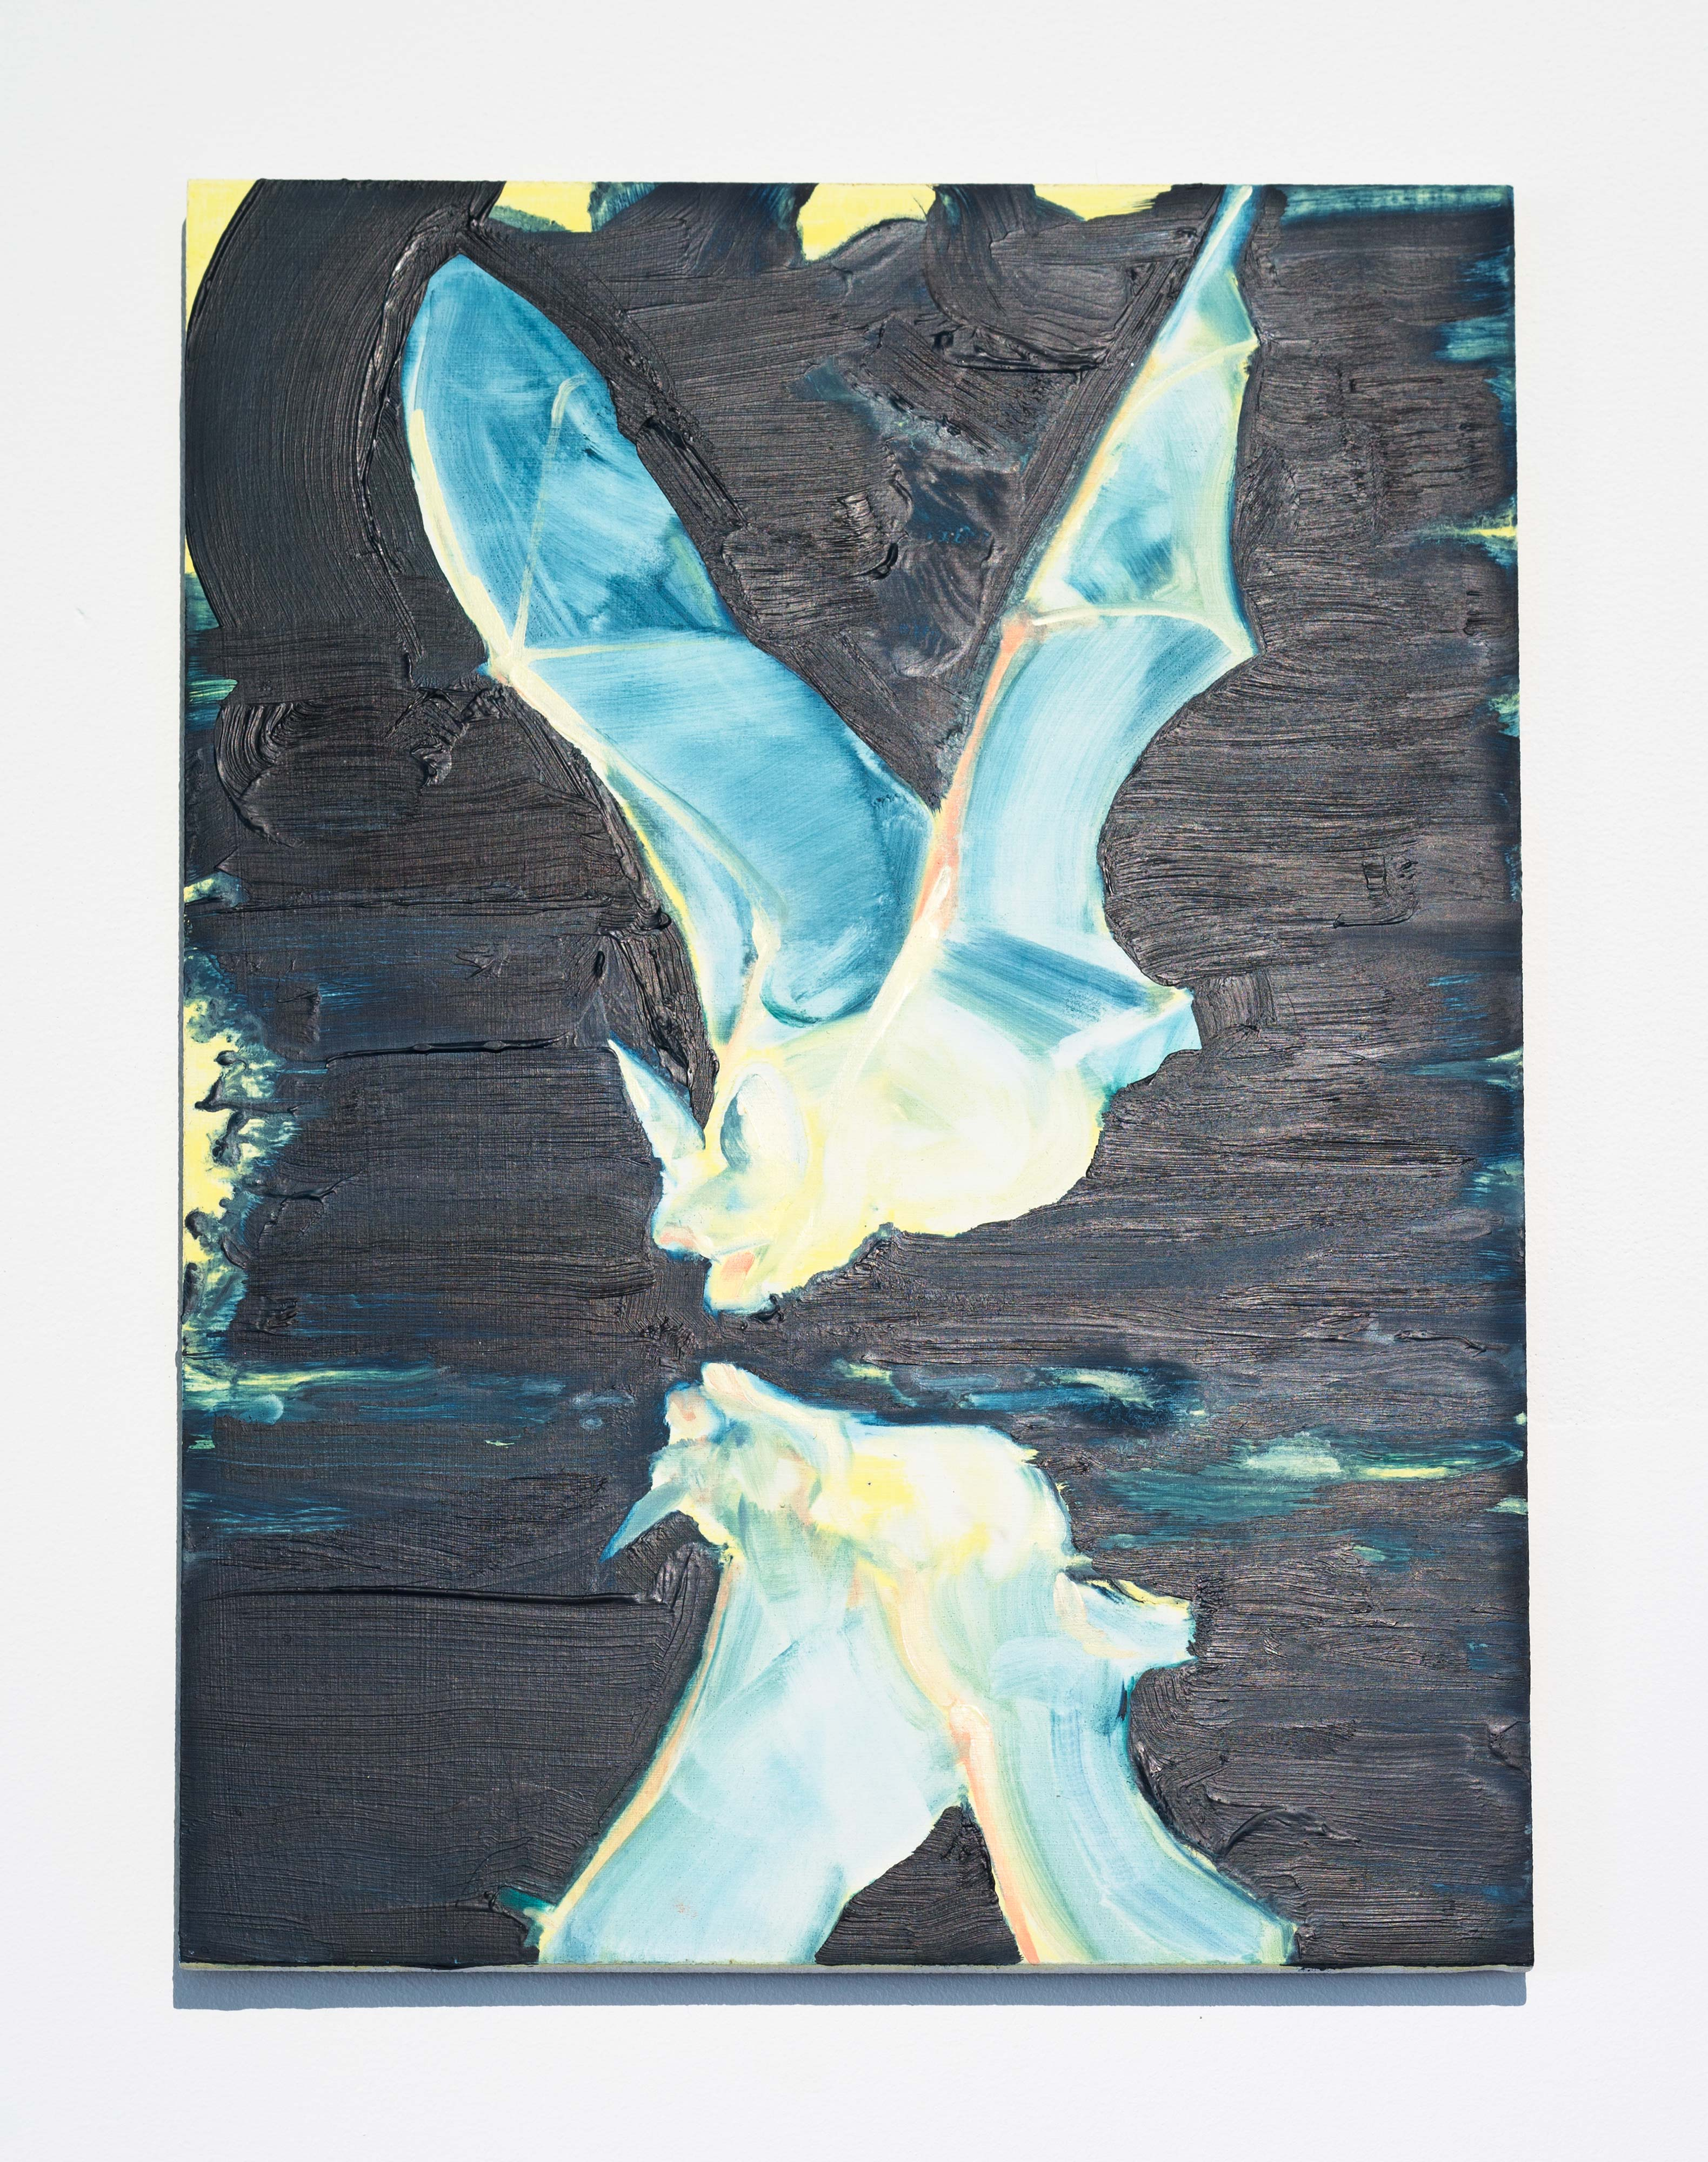 Laura Findlay<br>Reflected Night Bat (Bird)<br>2015<br>Oil on Panel<br>16 x 12 in (40.6 x 30.5 cm)